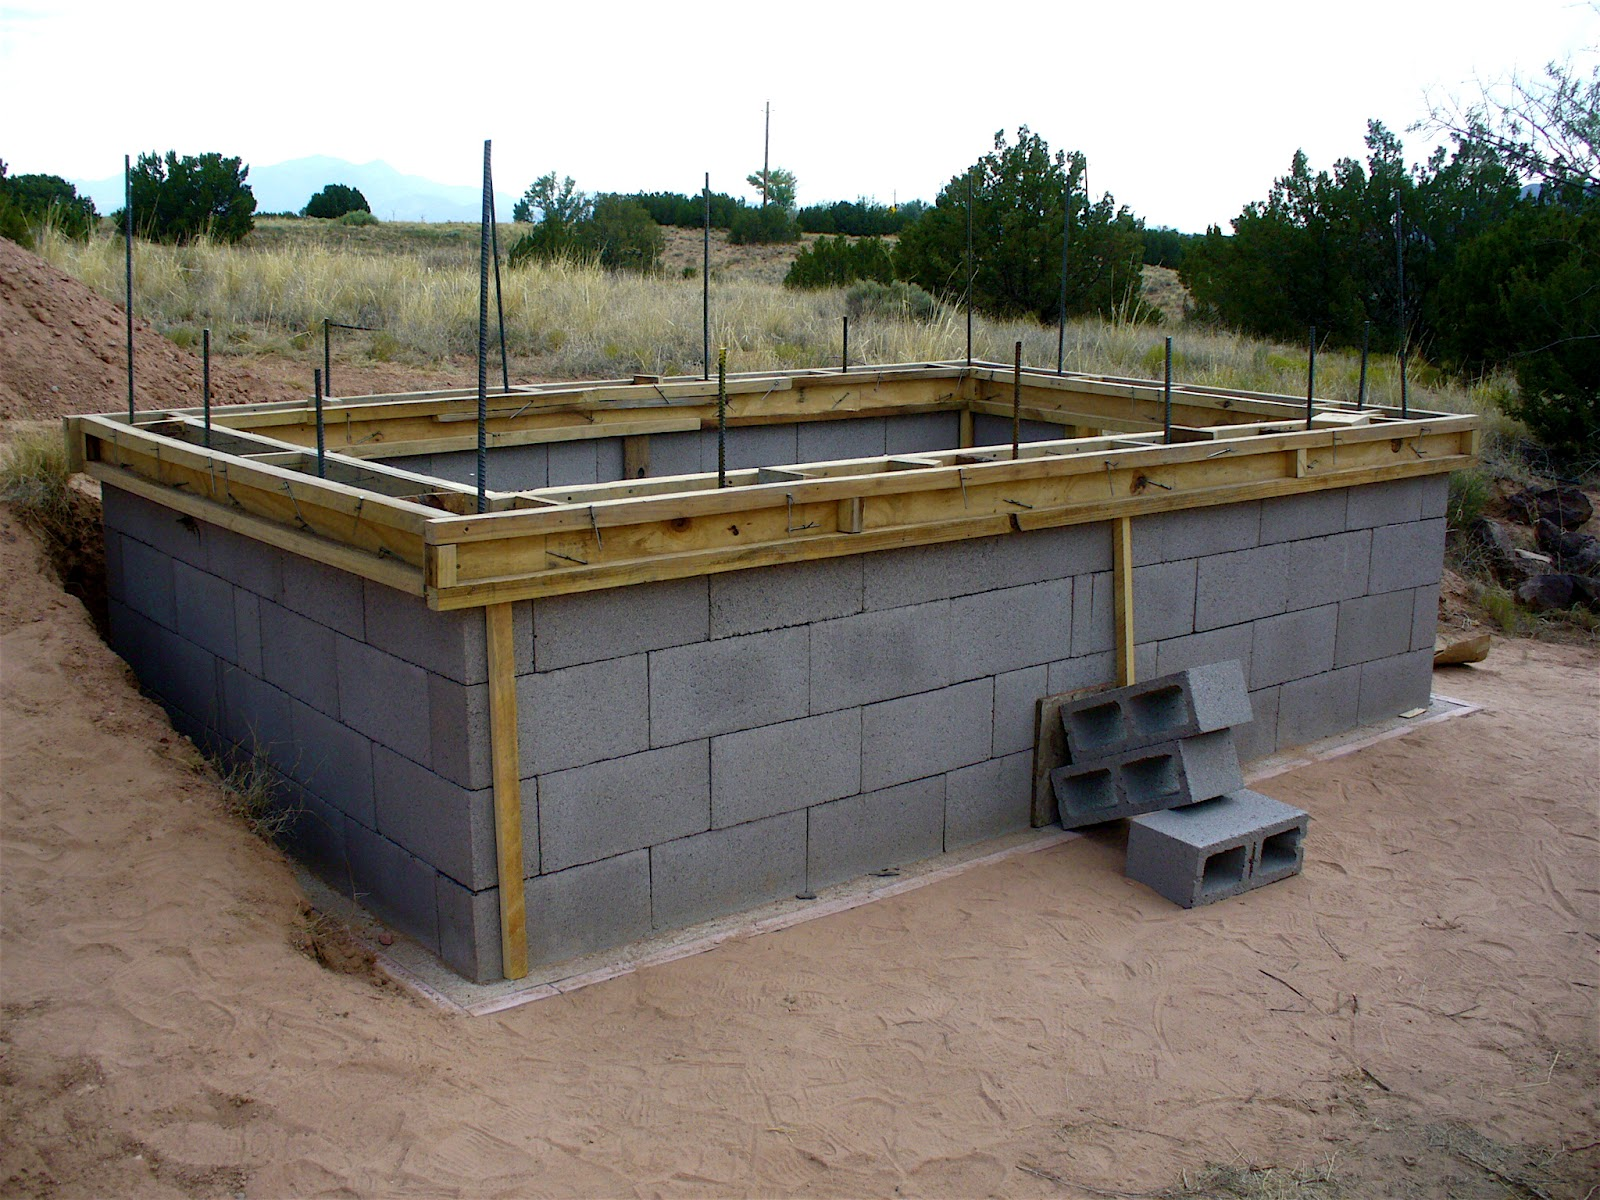 Alt build blog building a well house 2 dry stack for How to build a concrete block wall foundation